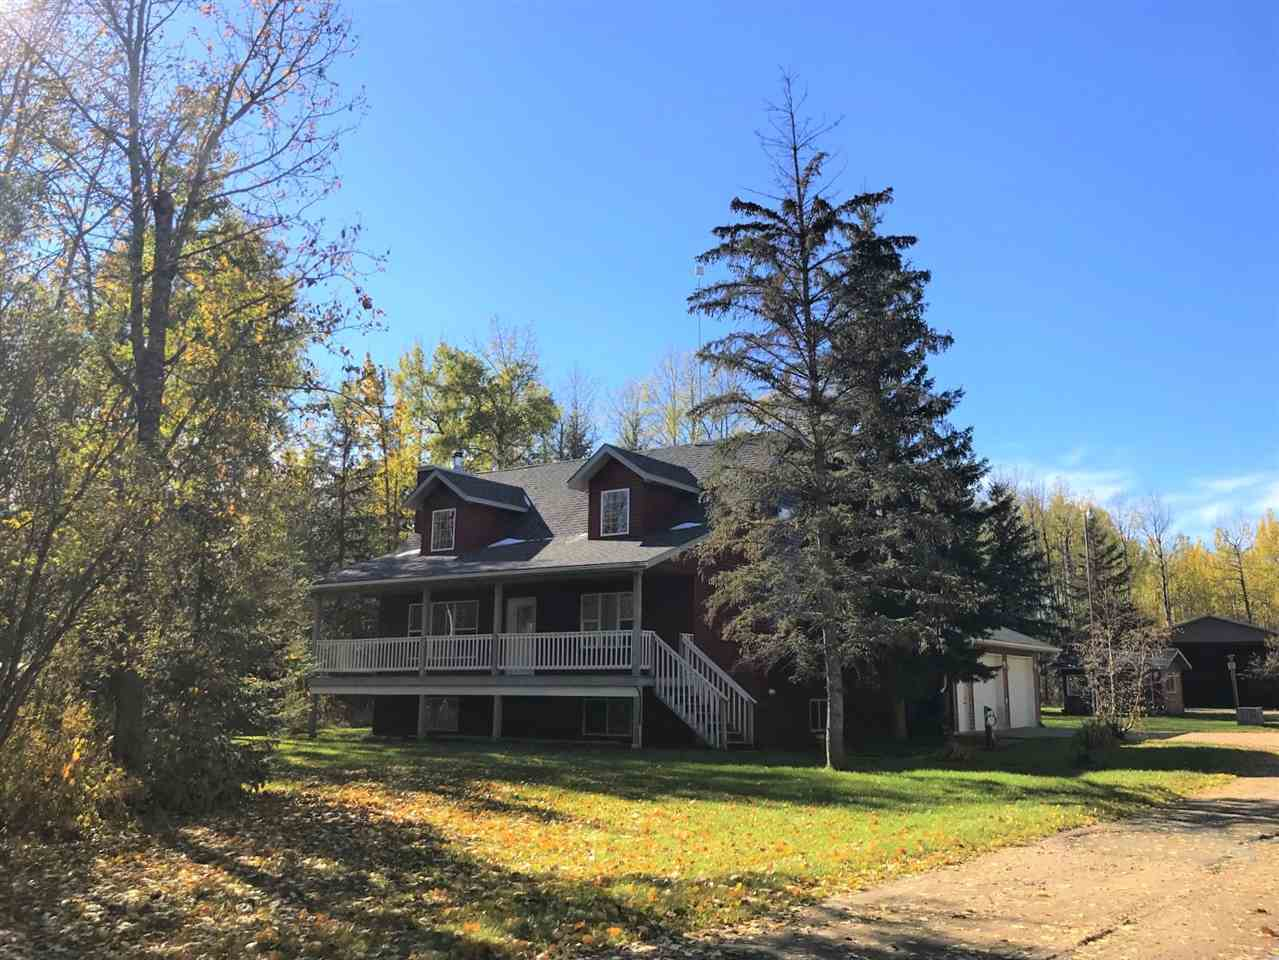 MLS® listing #E4131953 for sale located at #8 9002 Hwy 16